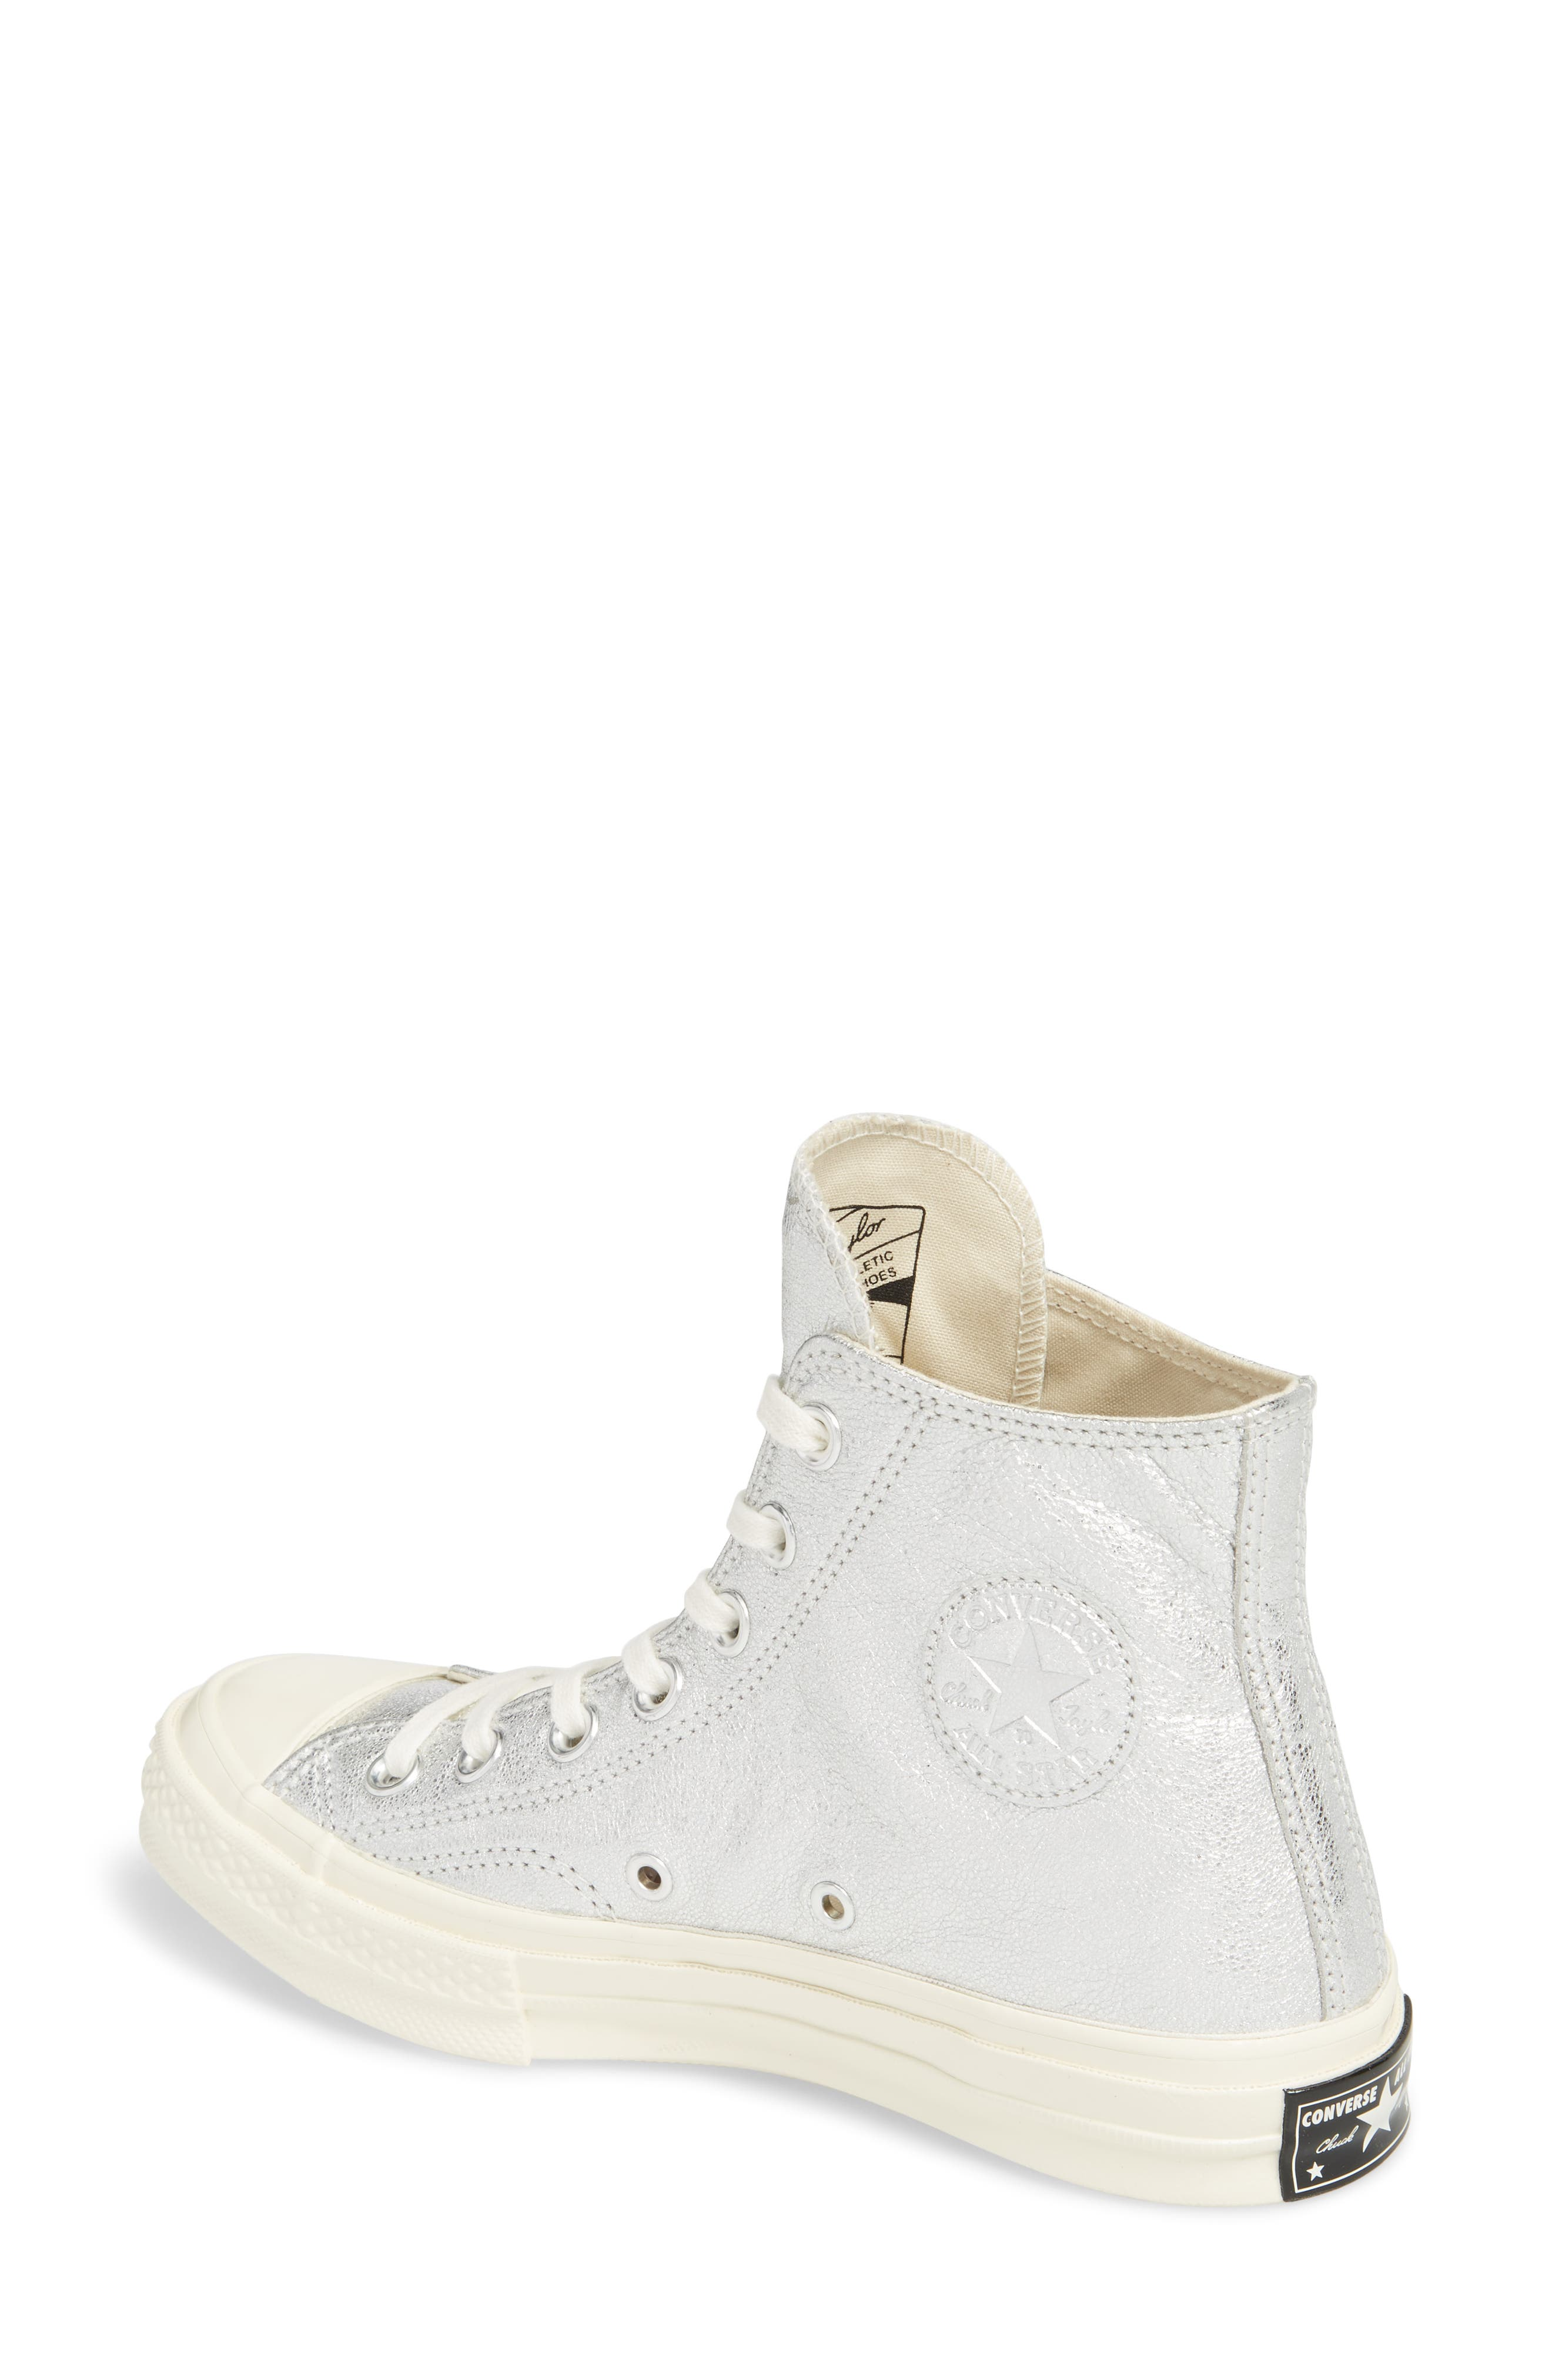 Chuck Taylor<sup>®</sup> All Star<sup>®</sup> Heavy Metal 70 High Top Sneaker,                             Alternate thumbnail 2, color,                             040